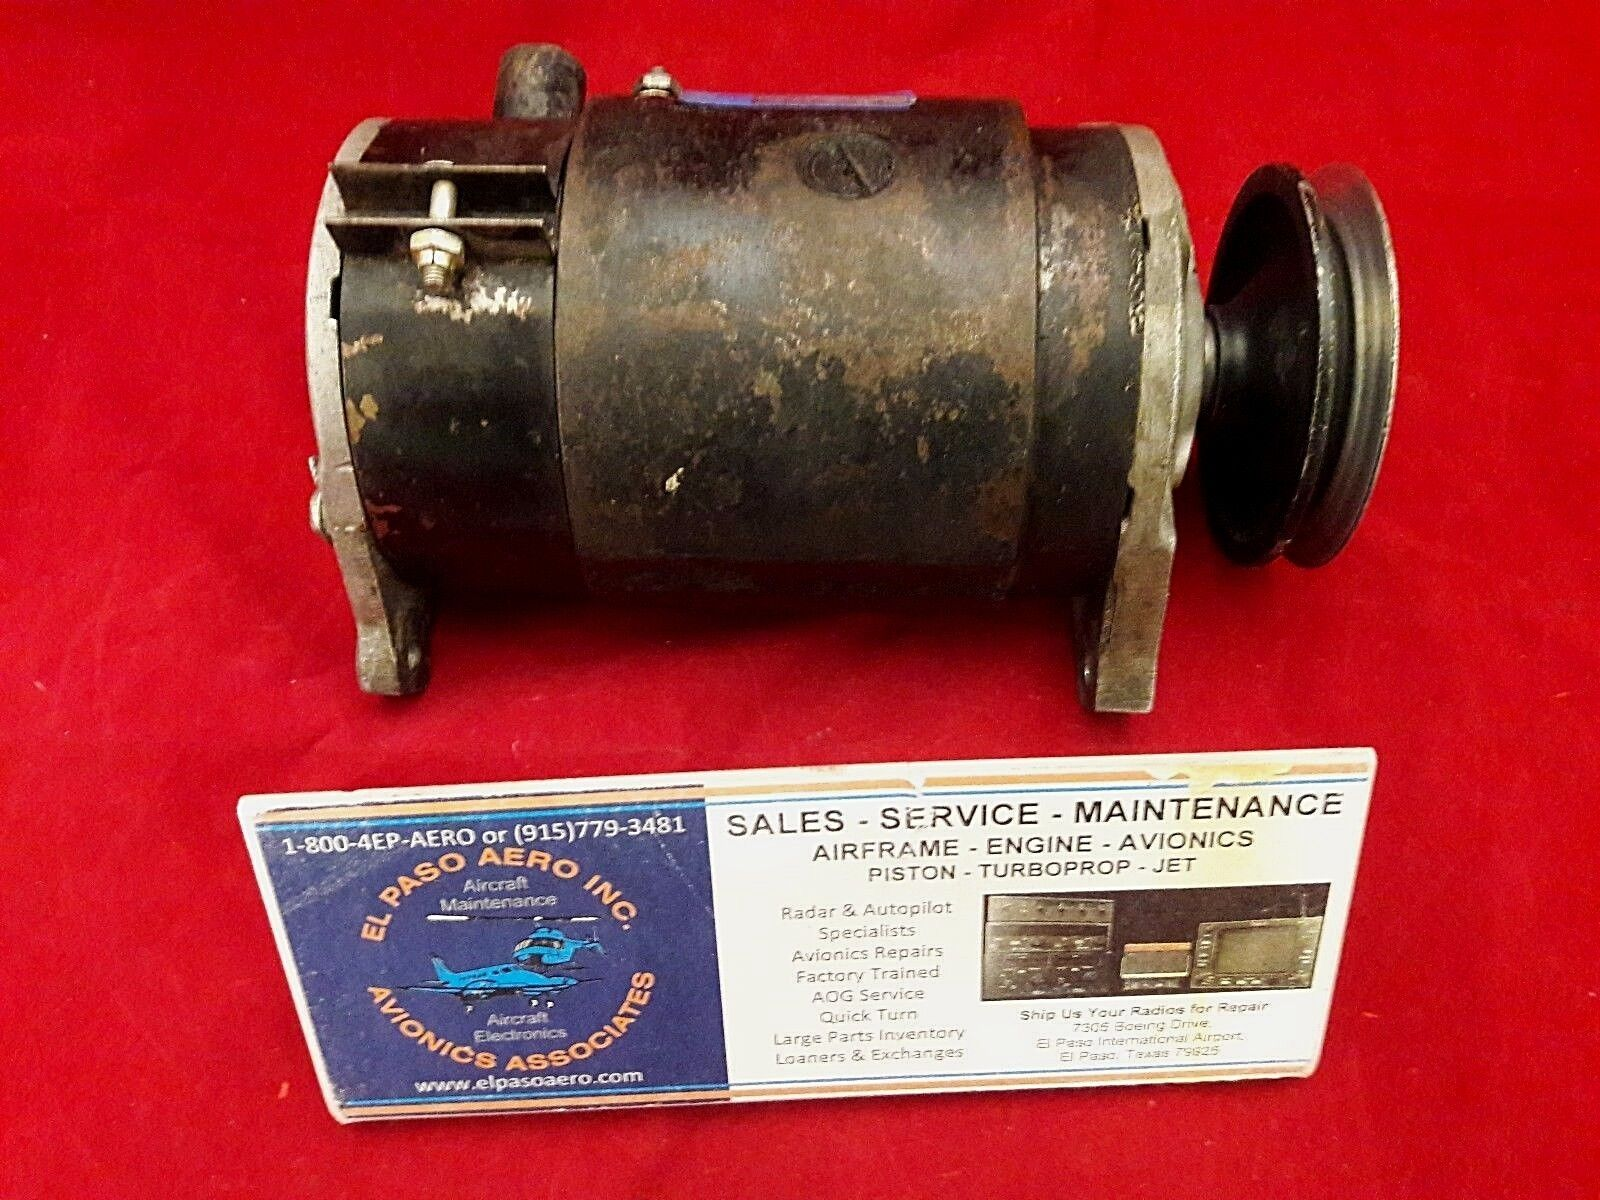 Delco-Remy Generator Model 1101912. As removed condition. $150.